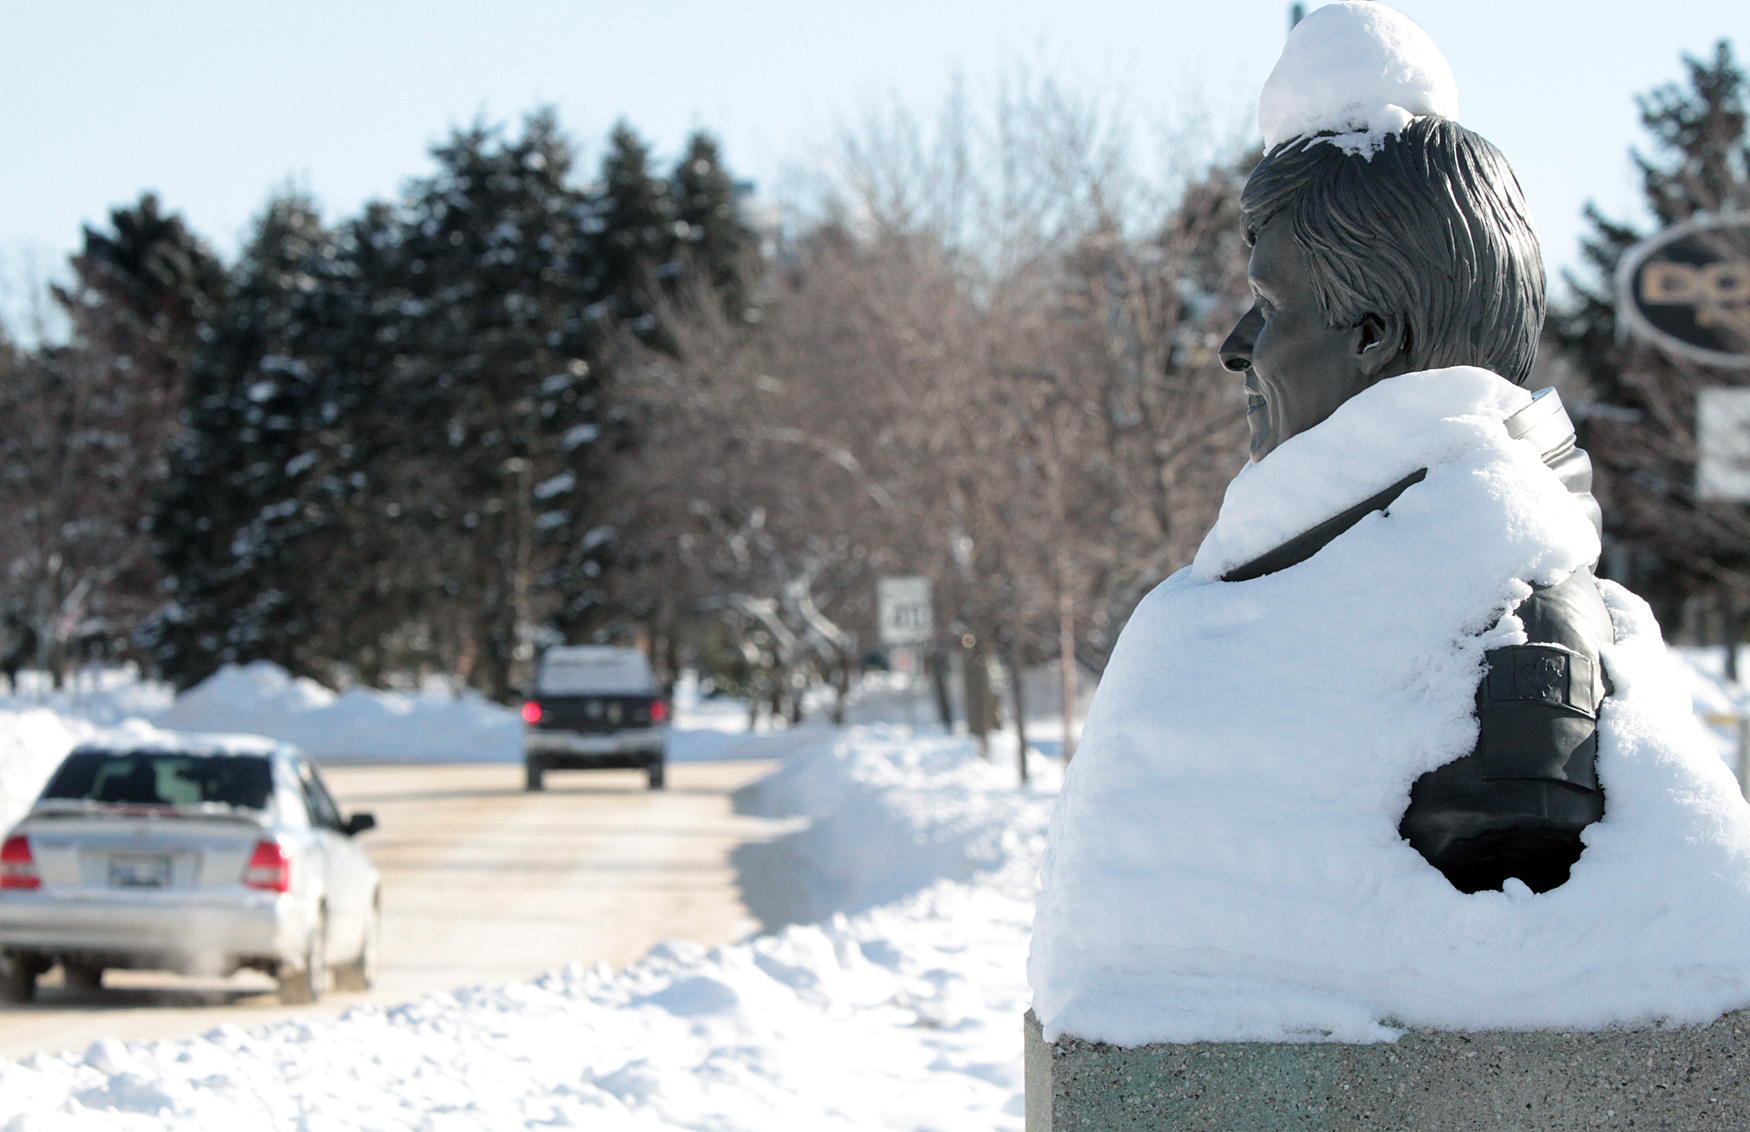 Finding an interesting weather photo each day, can be a challenge. This photo, I snapped of a statue Dr. Roberta Bondar's (Canada's first female astronaut) with a giant dusting of snow....was different look at a weather picture, yet told a story about a snow-filled winter. Often a weather feature can be found, by just looking at your surrounding environment.